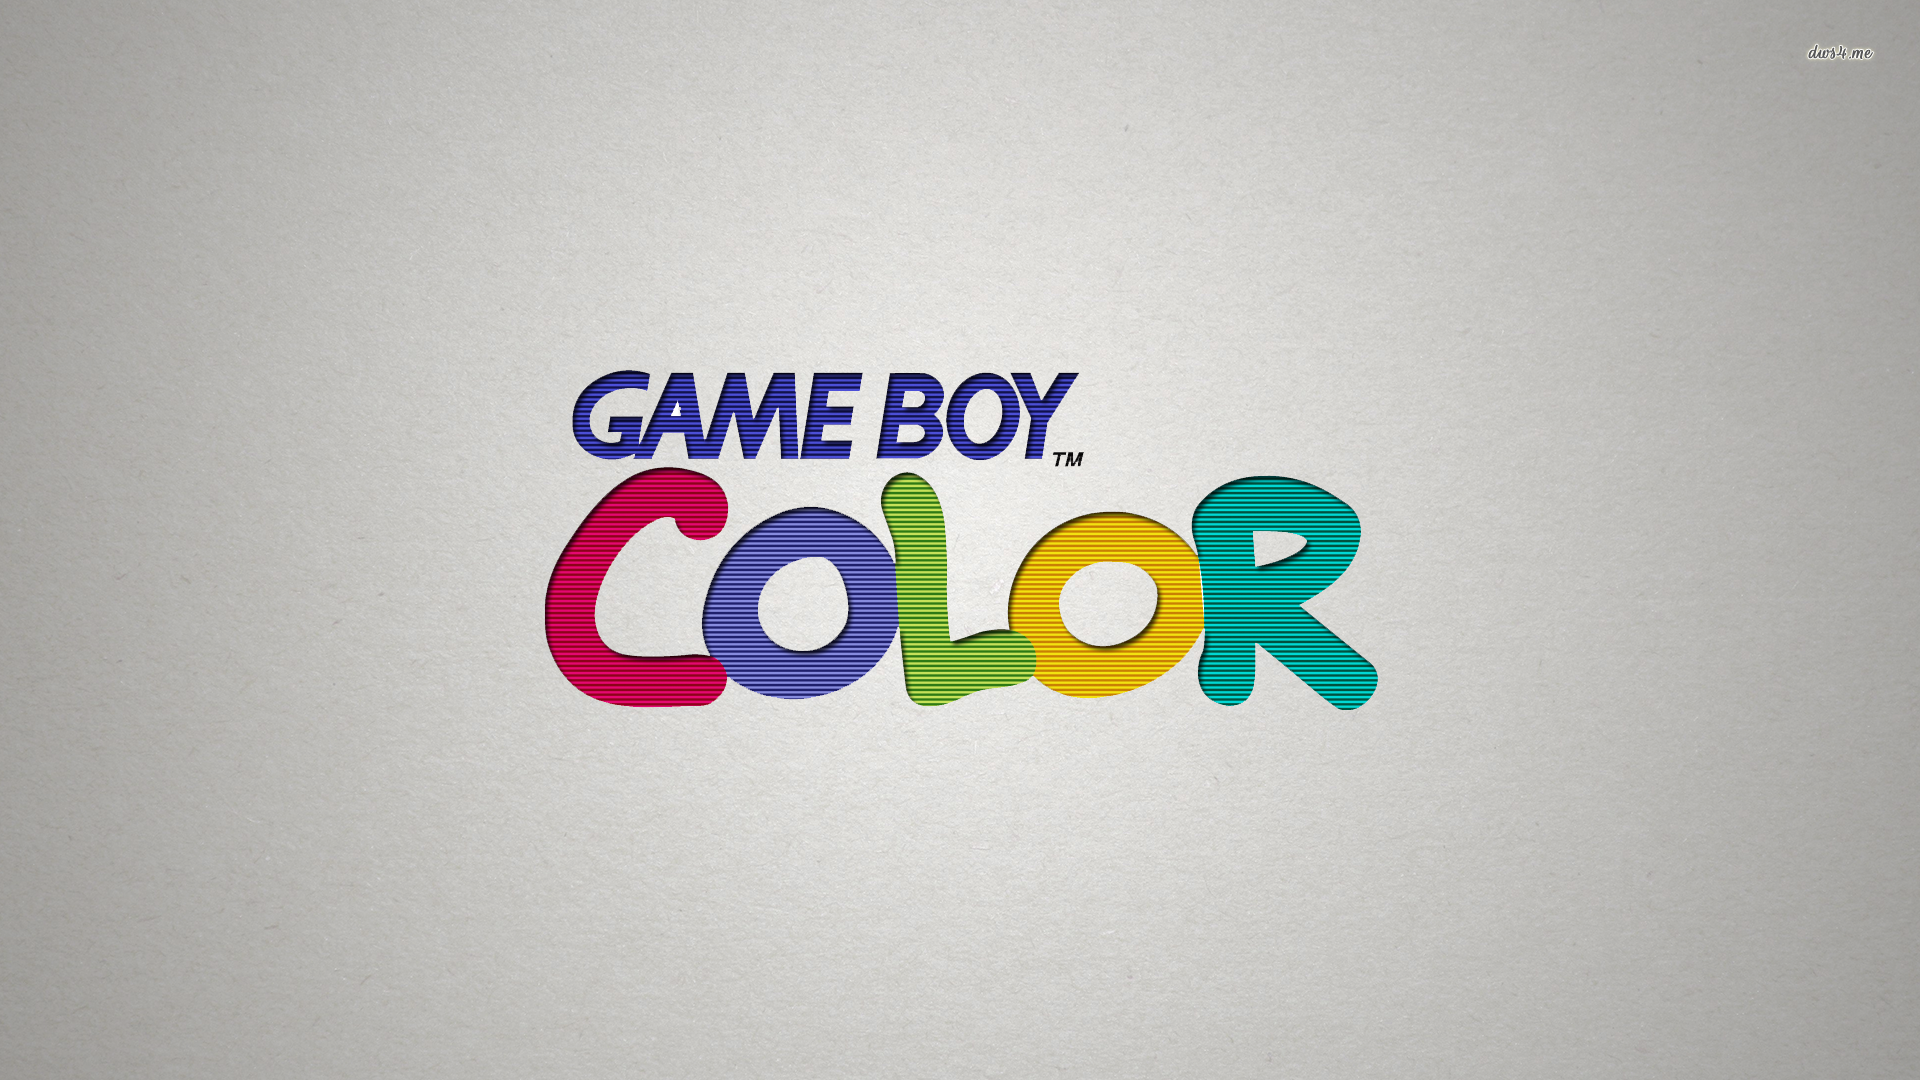 Game Boy Color wallpaper 1280x800 Game Boy Color wallpaper 1366x768 1920x1080